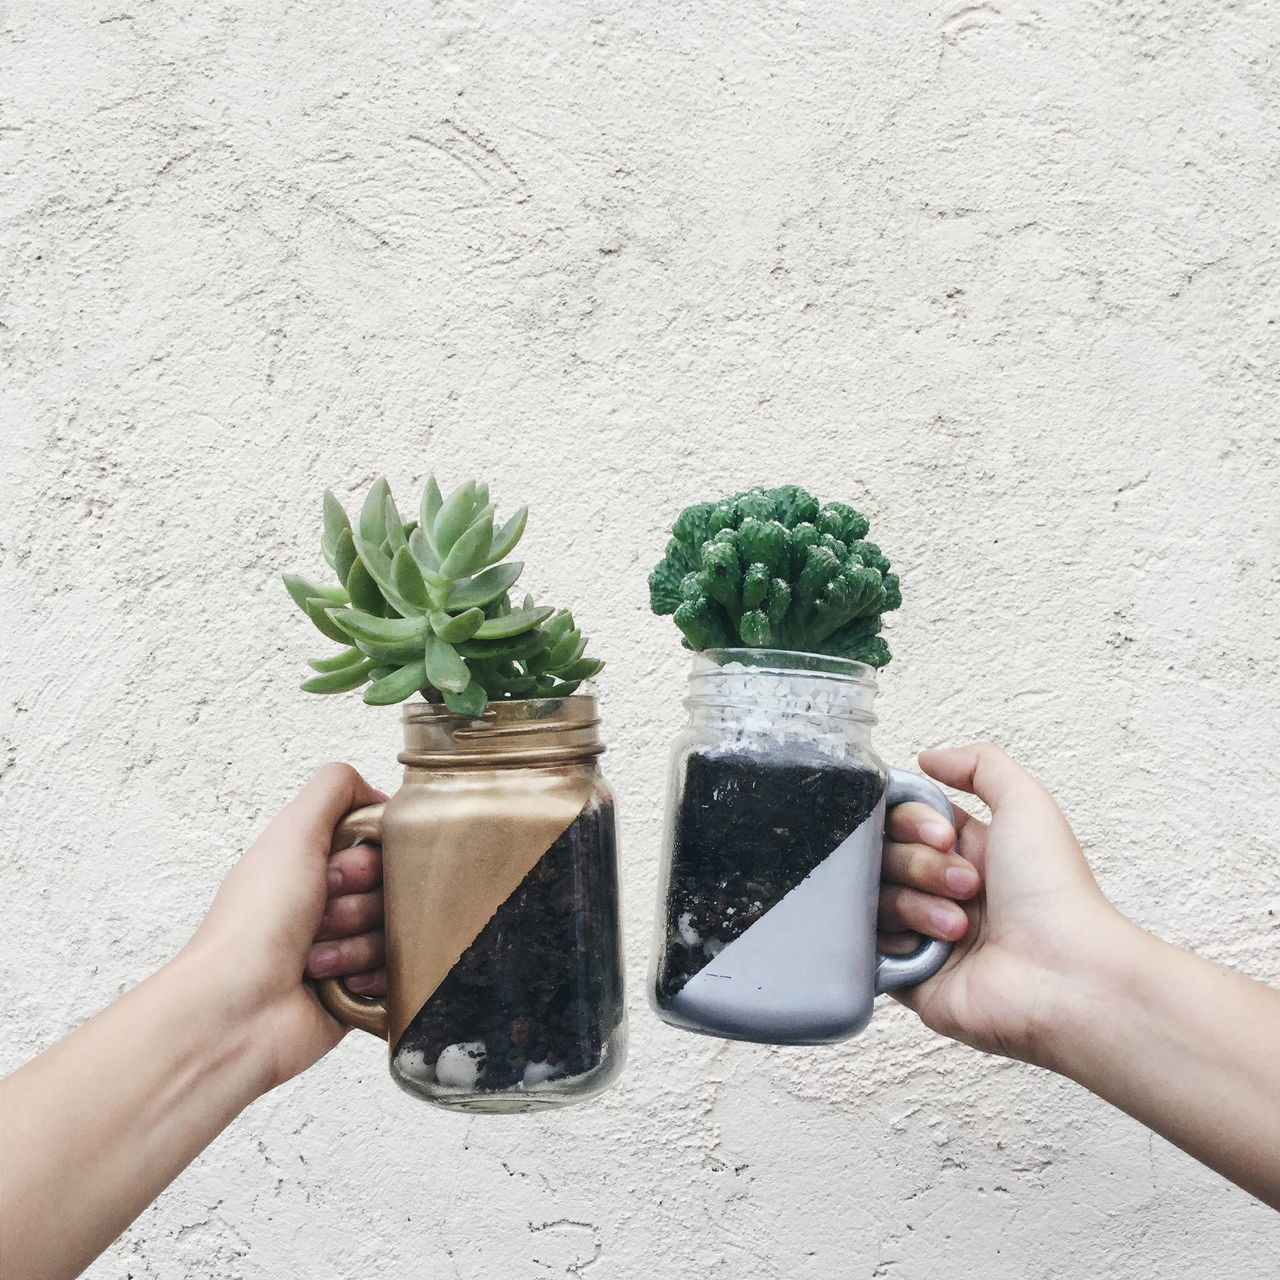 Hands holding plants in glass jars